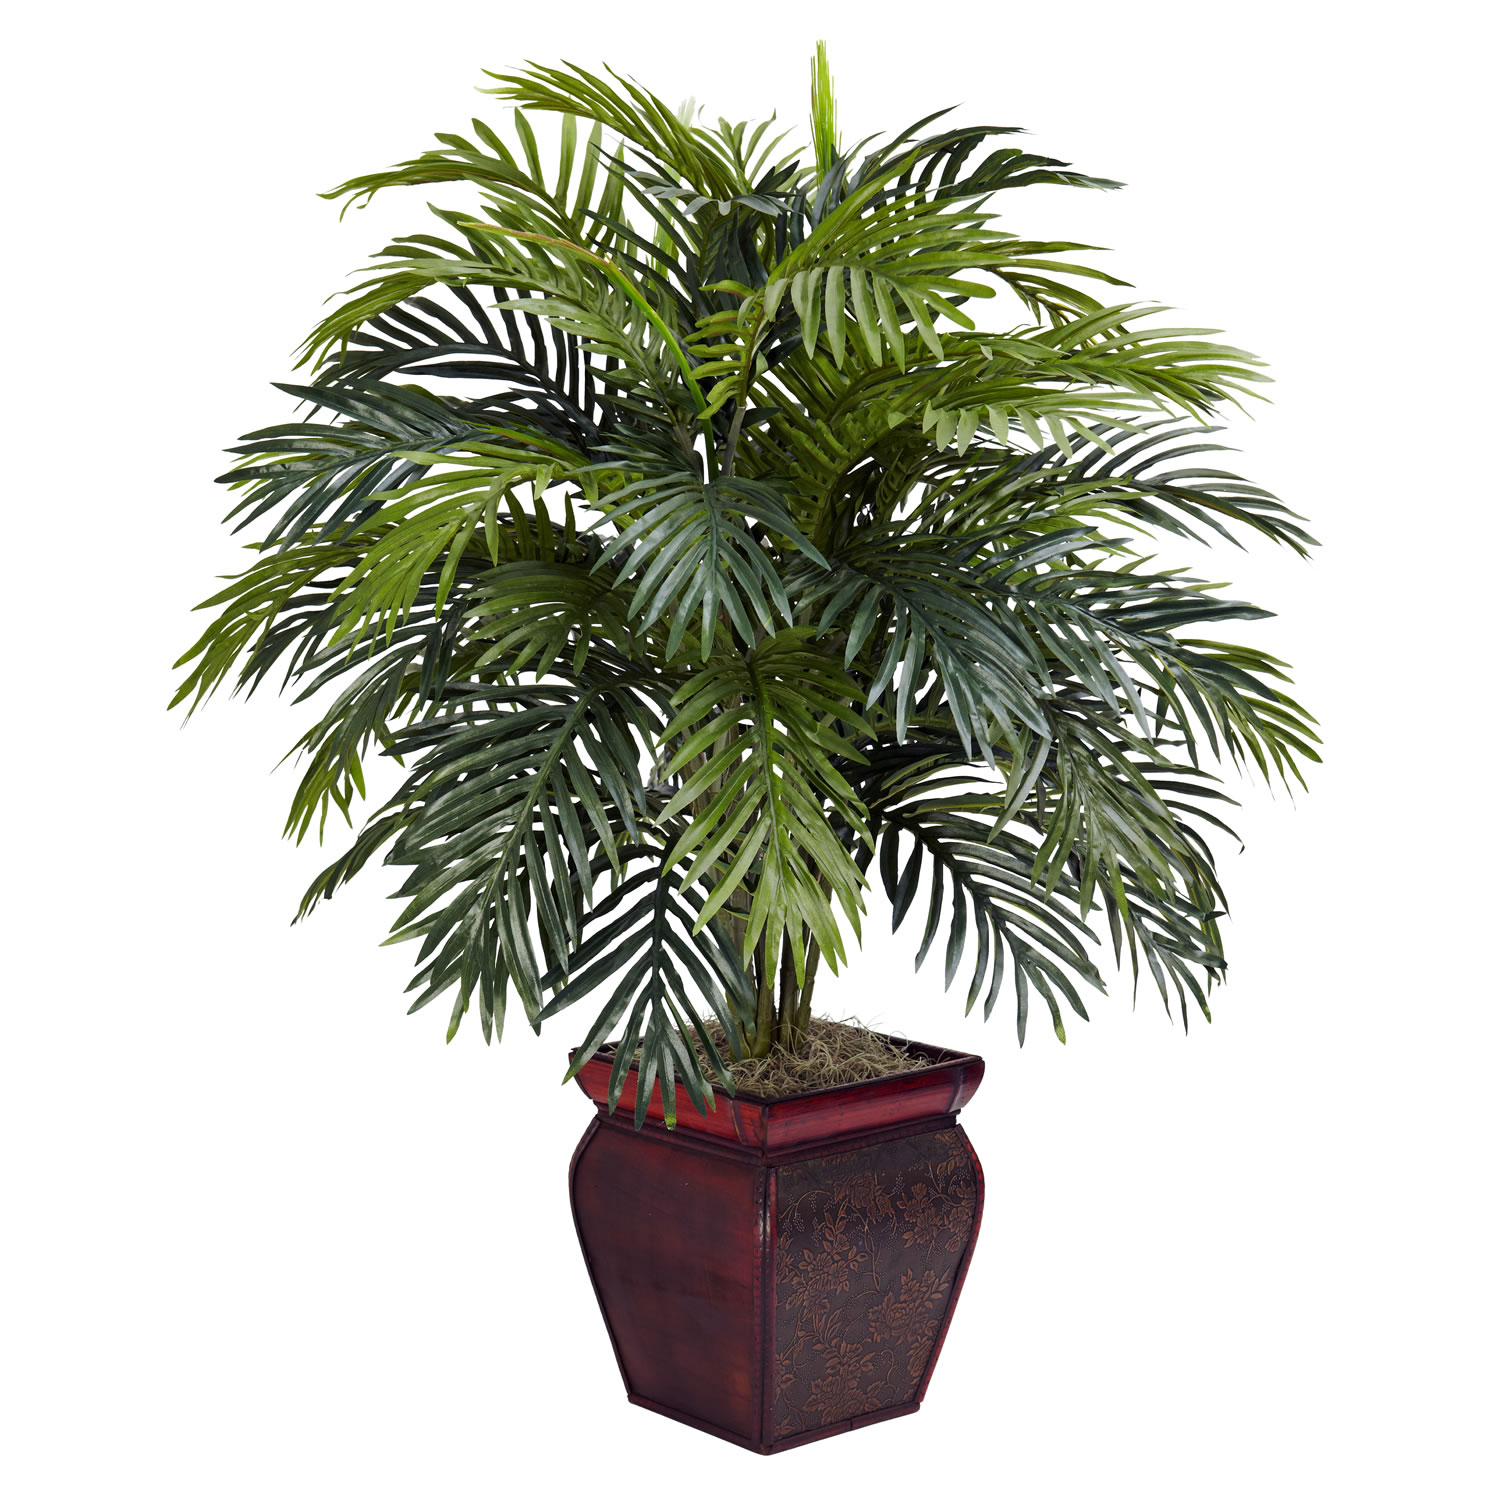 38 inch artificial areca plant in decorative planter 6686 for Artificial plants for decoration